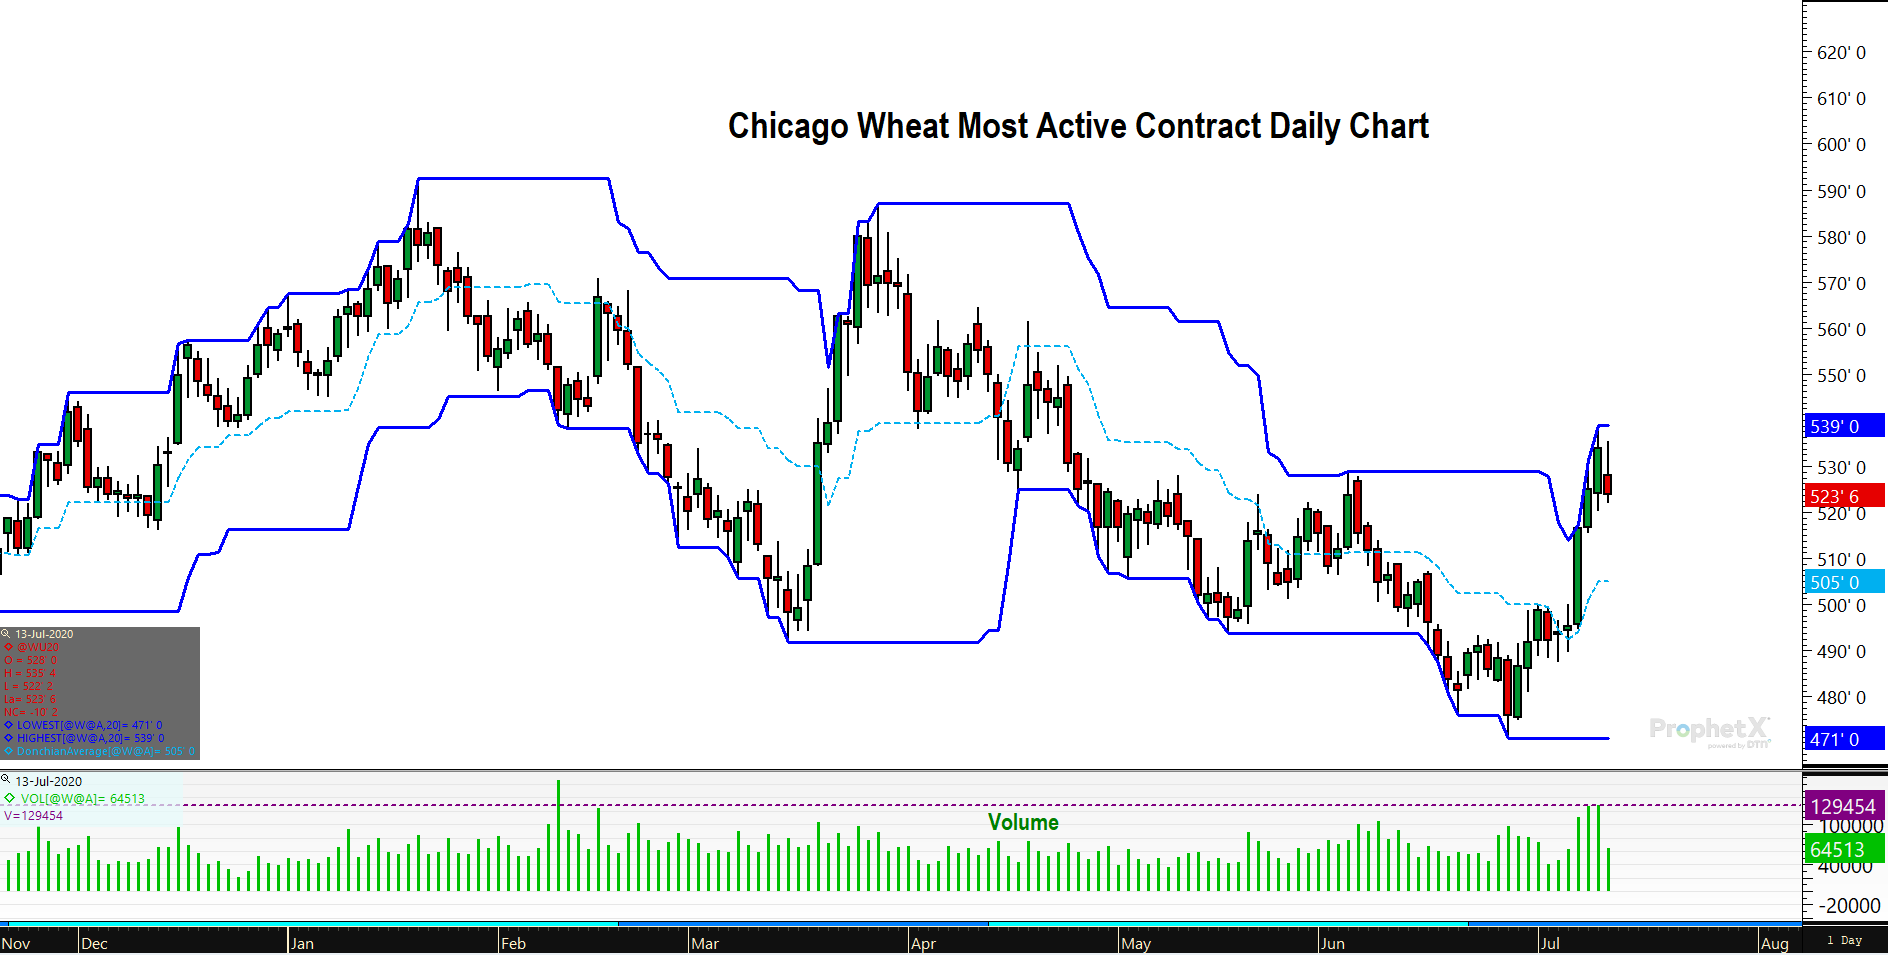 Most Active Wheat Futures